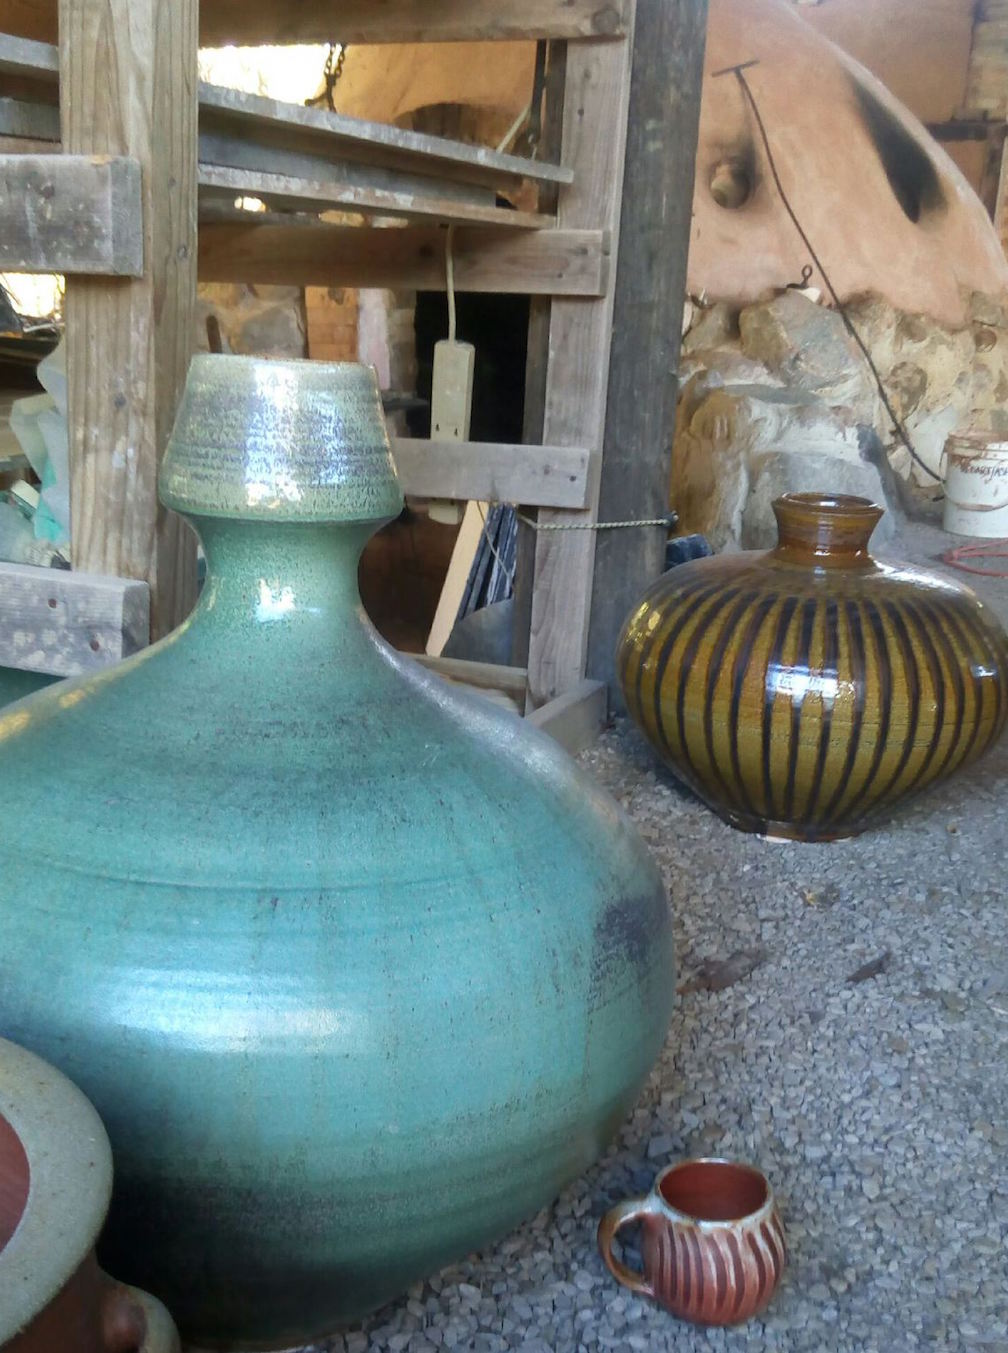 Large vessels, a mug, and the kiln in the background - all by Mark